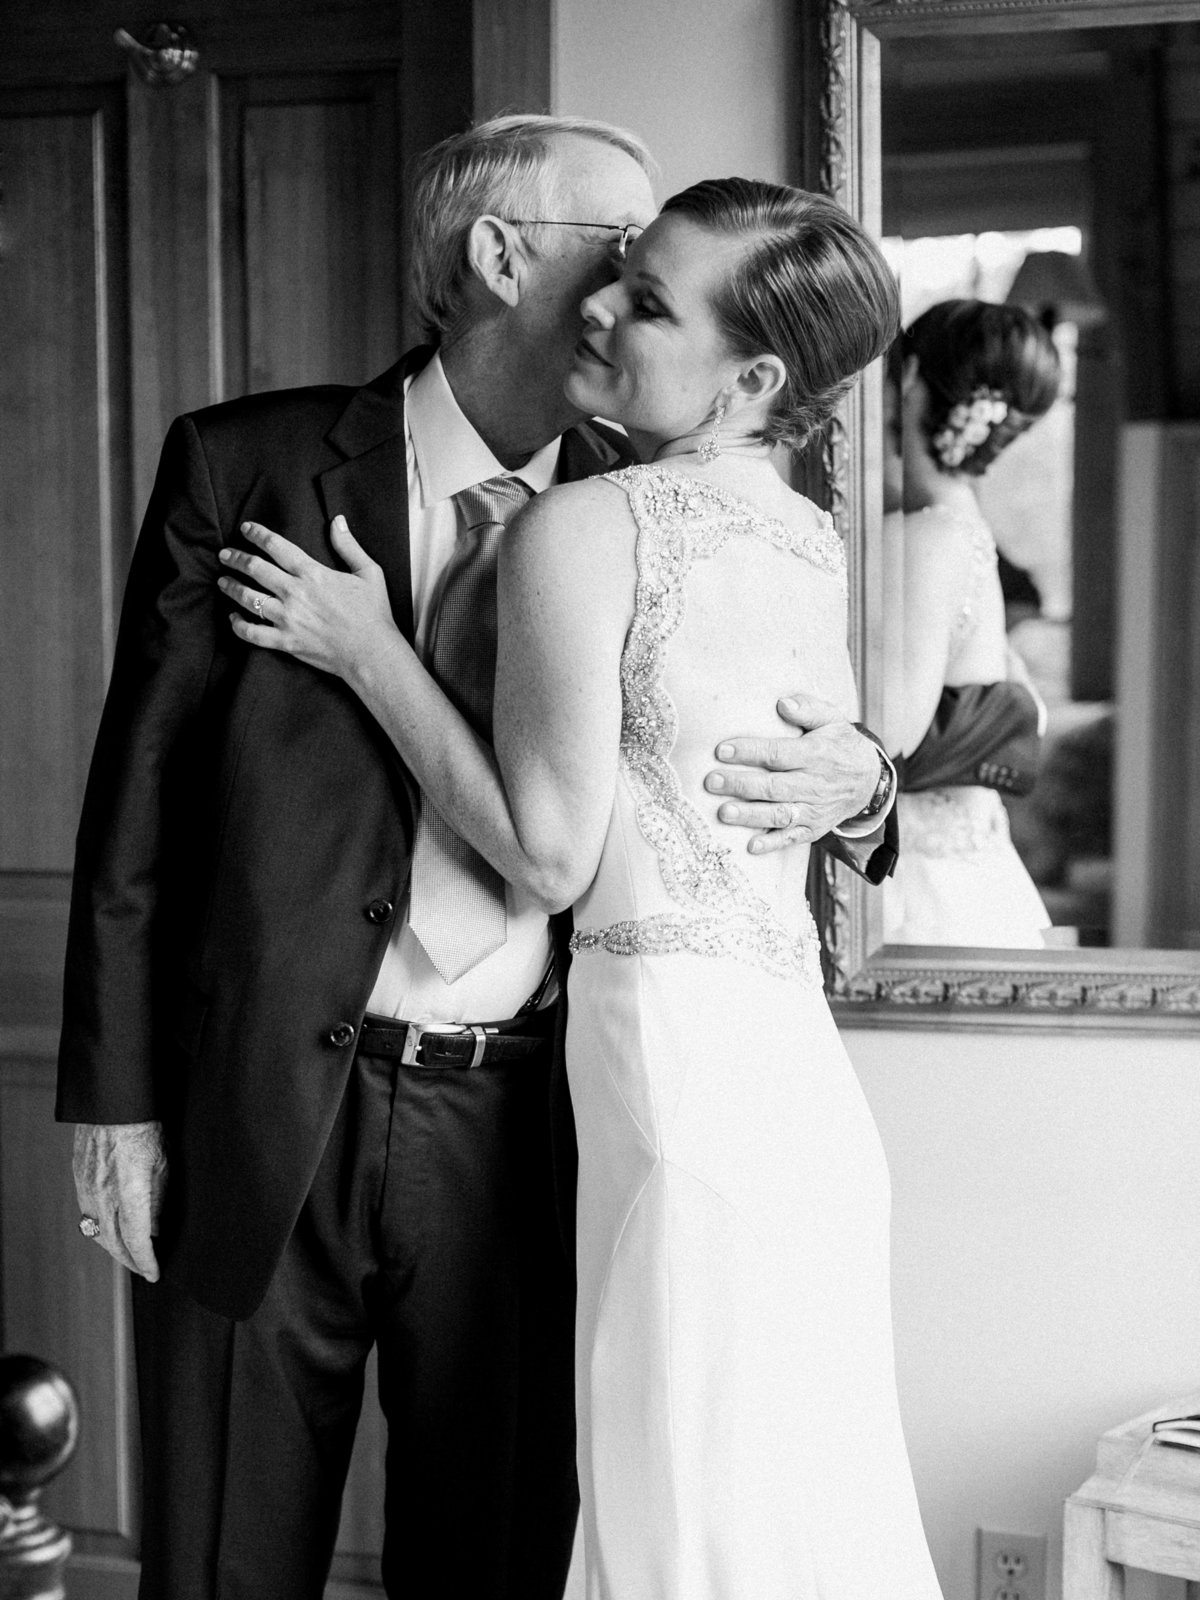 father of the bride kissing the bride's cheek